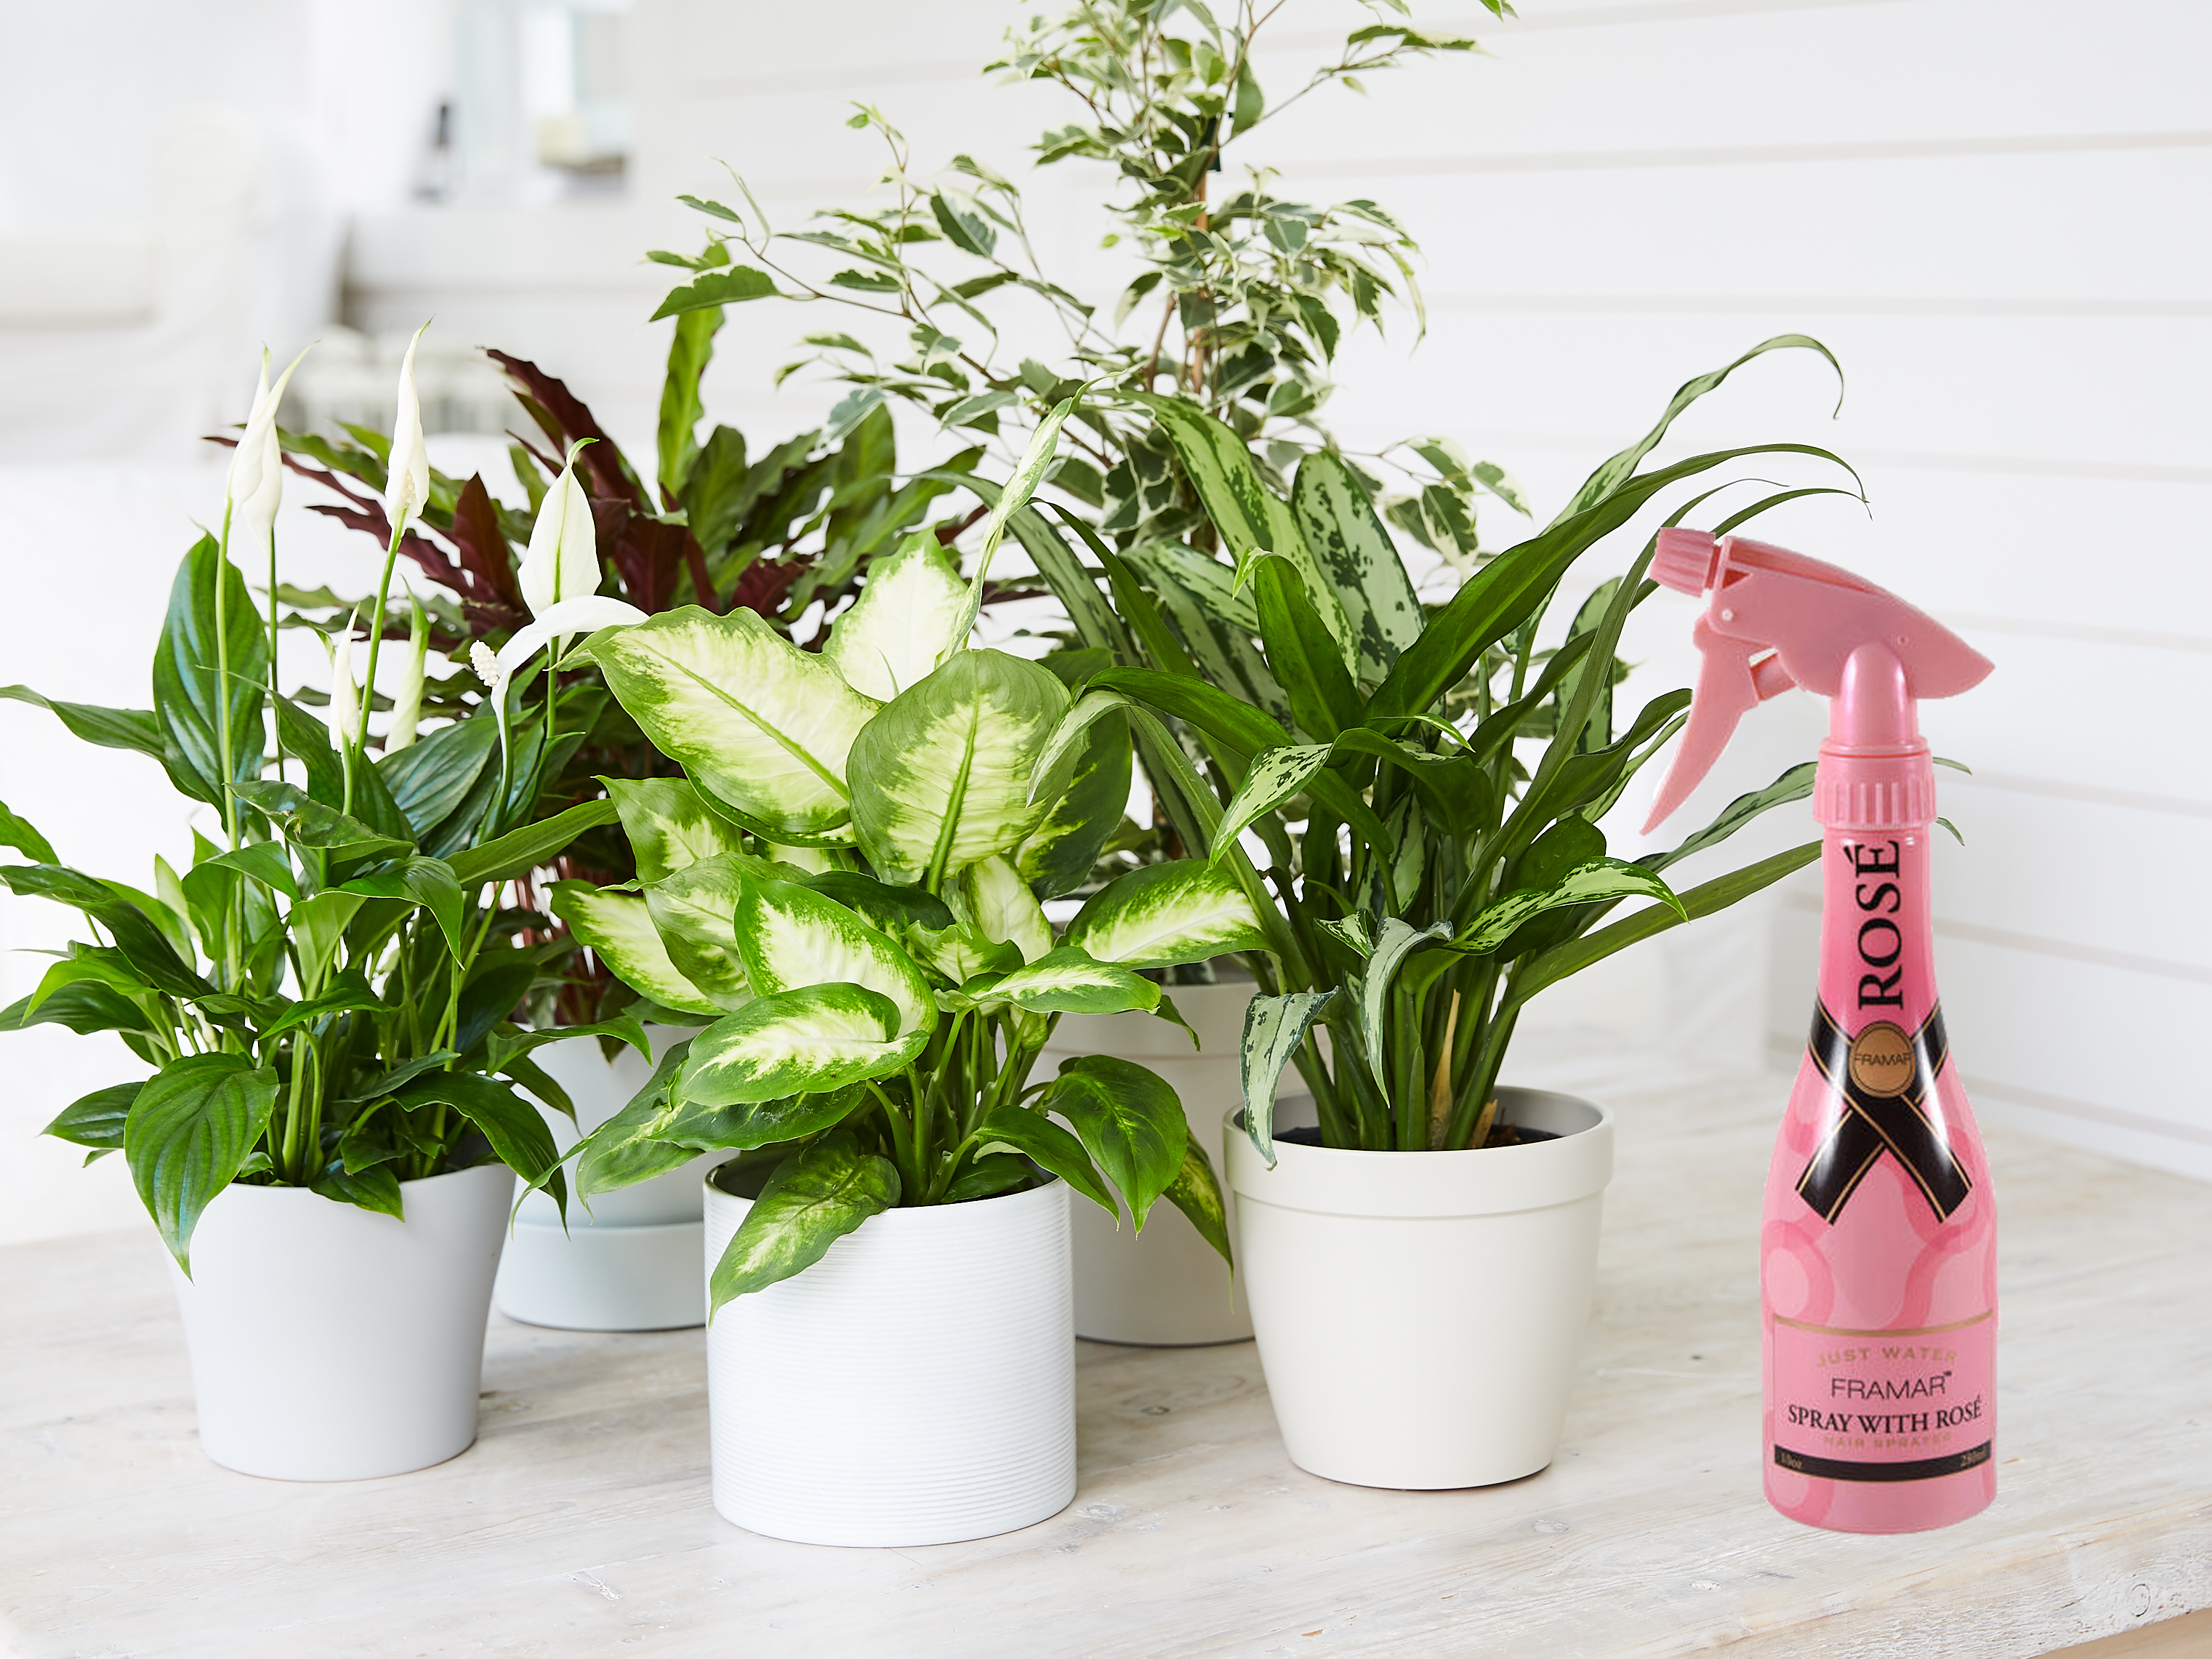 Next Time You Water Your Plants, Spray with Rosé